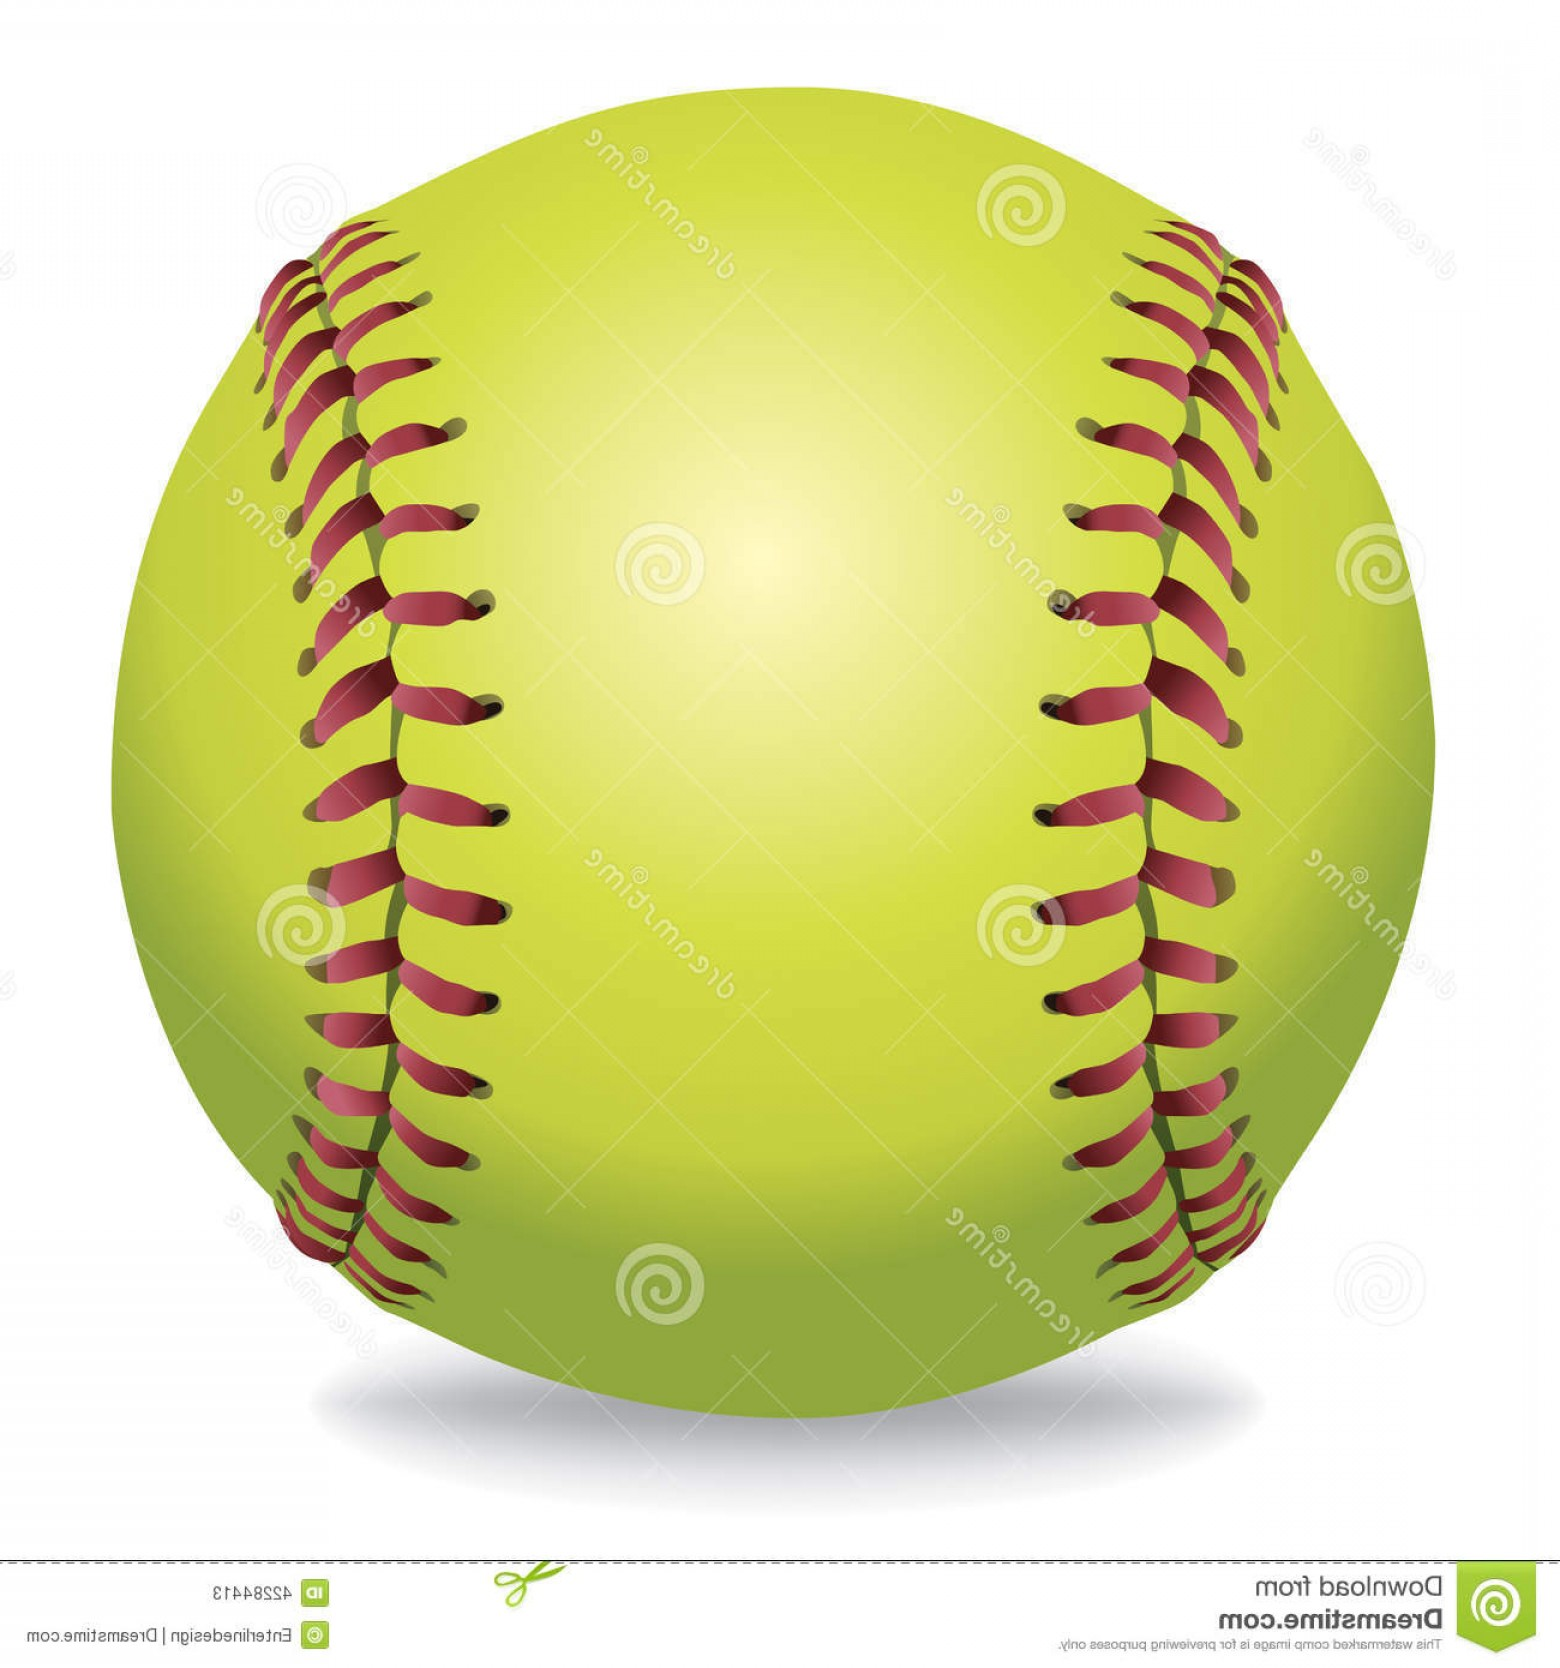 Neon Green Softball Stitches Vector: Softball On White Illustration Illustration